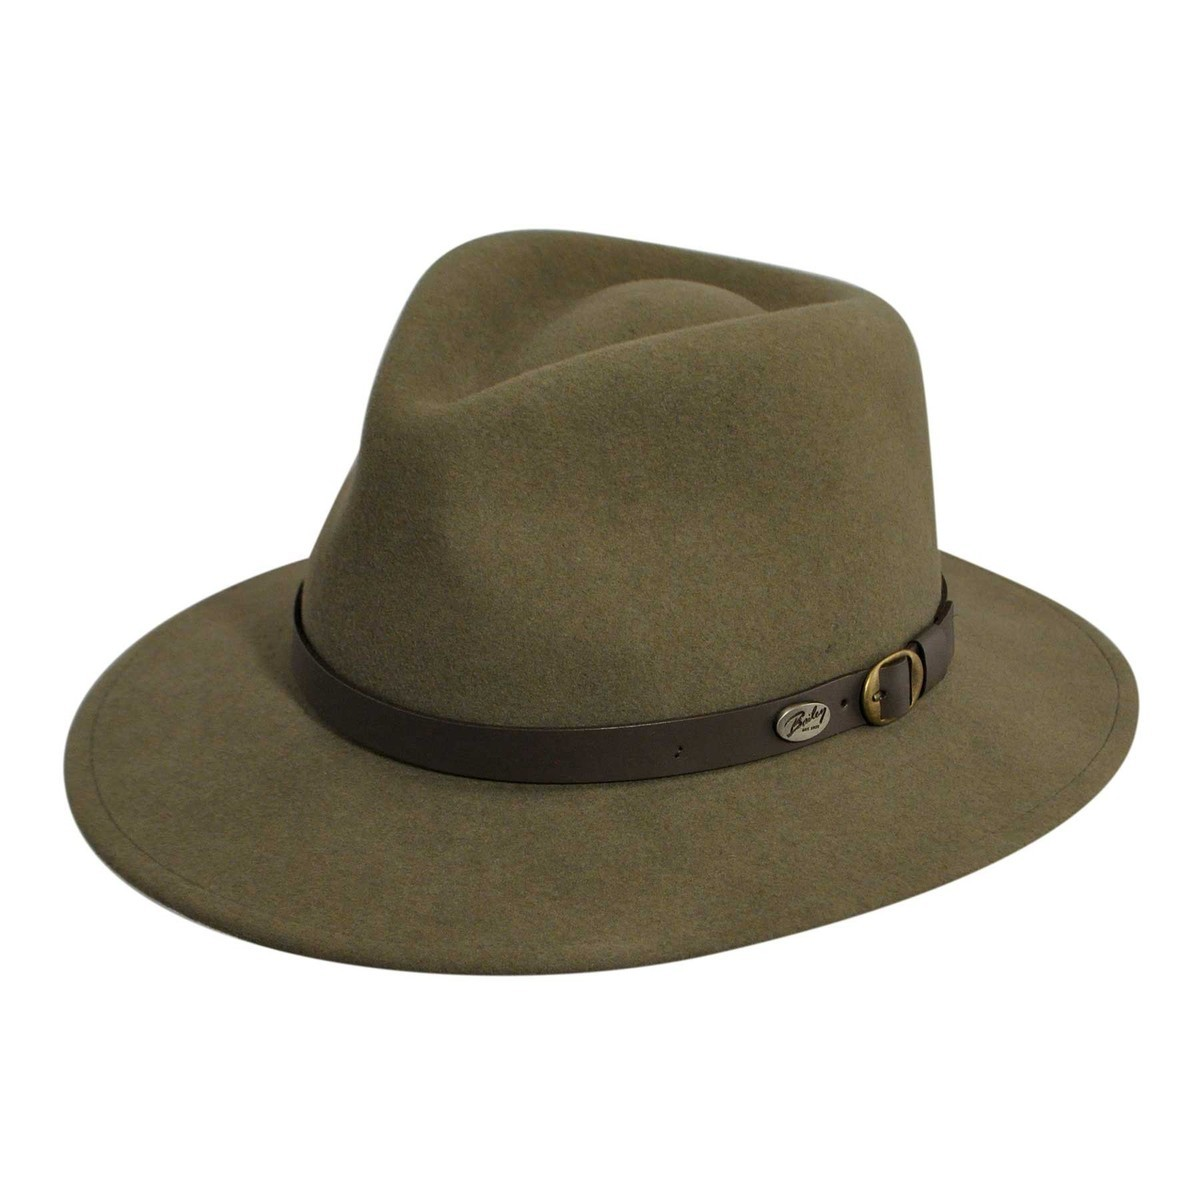 Bailey of Hollywood Briar Fedora Lichen フェドラハット 帽子 Lichen